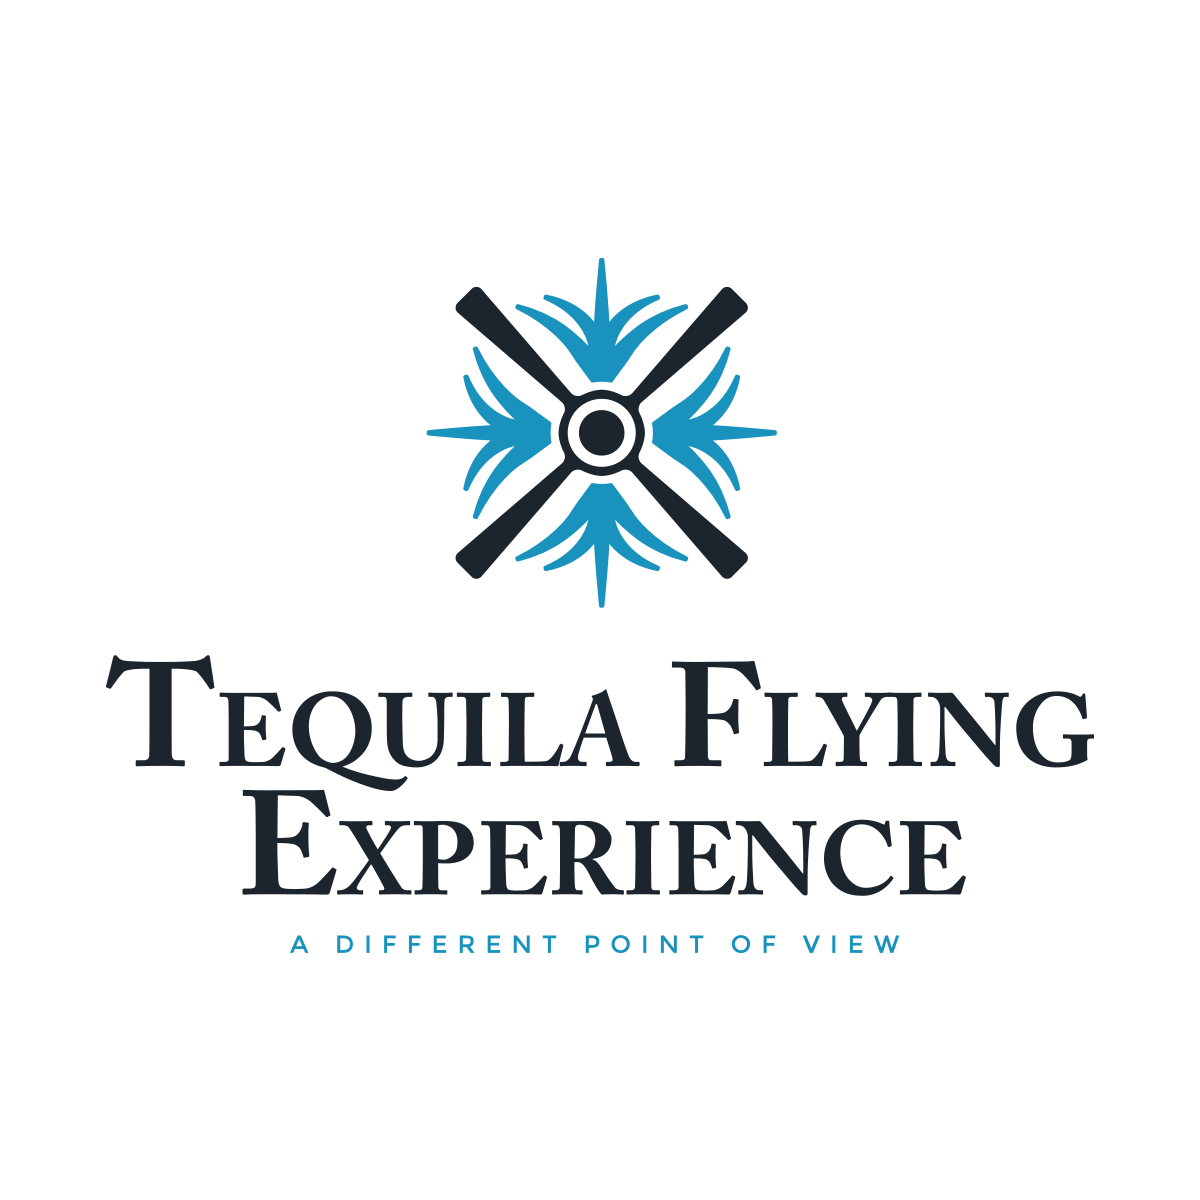 Tequila Flying Experience